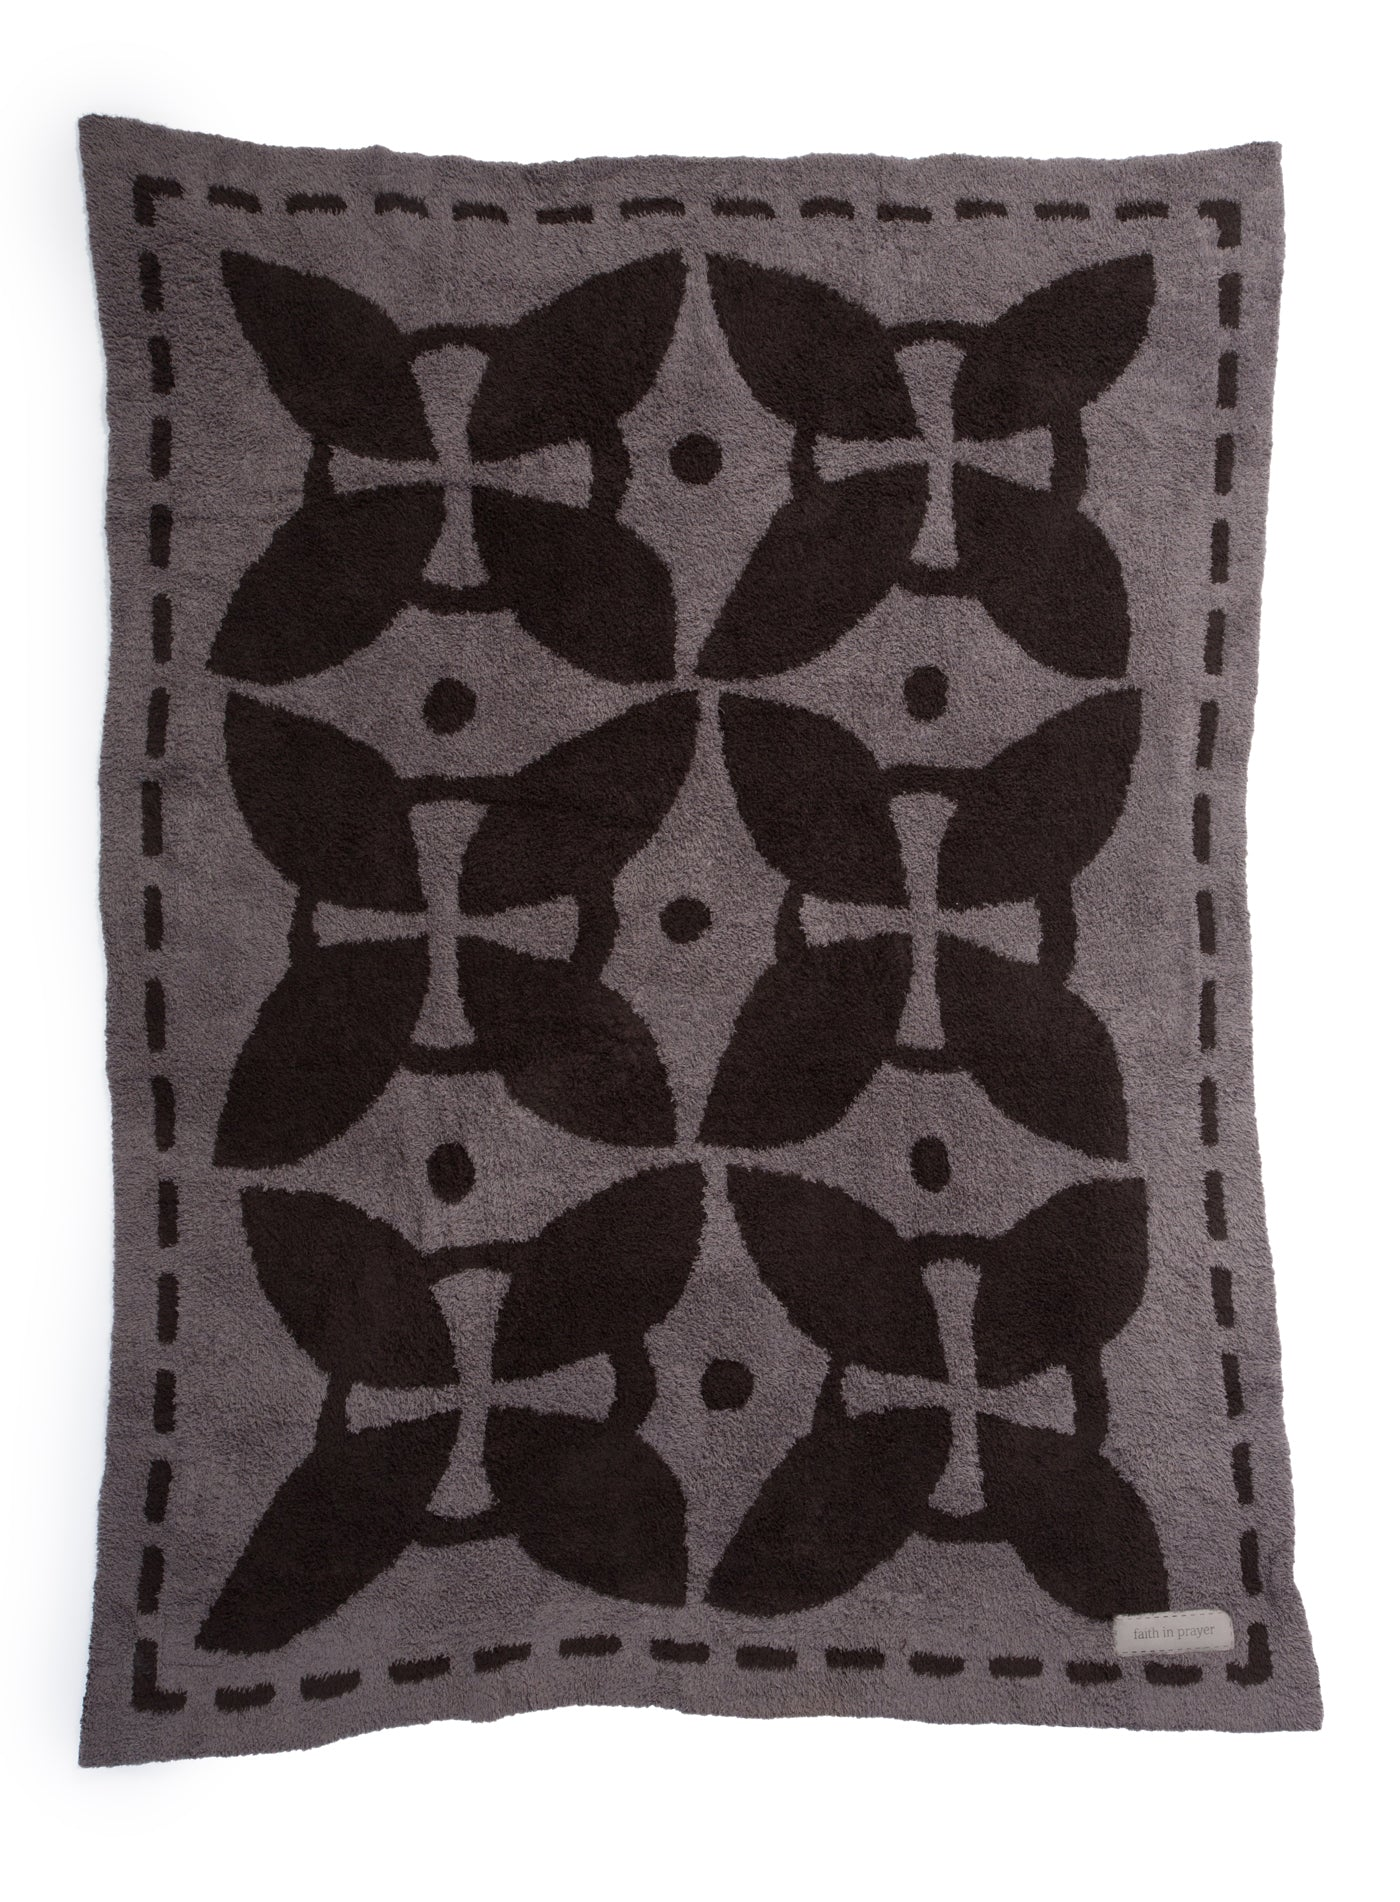 Barefoot Dreams - the COZYCHIC® COVERED IN PRAYER® (CHARCOAL / ESPRESSO / FAITH IN PRAYER)